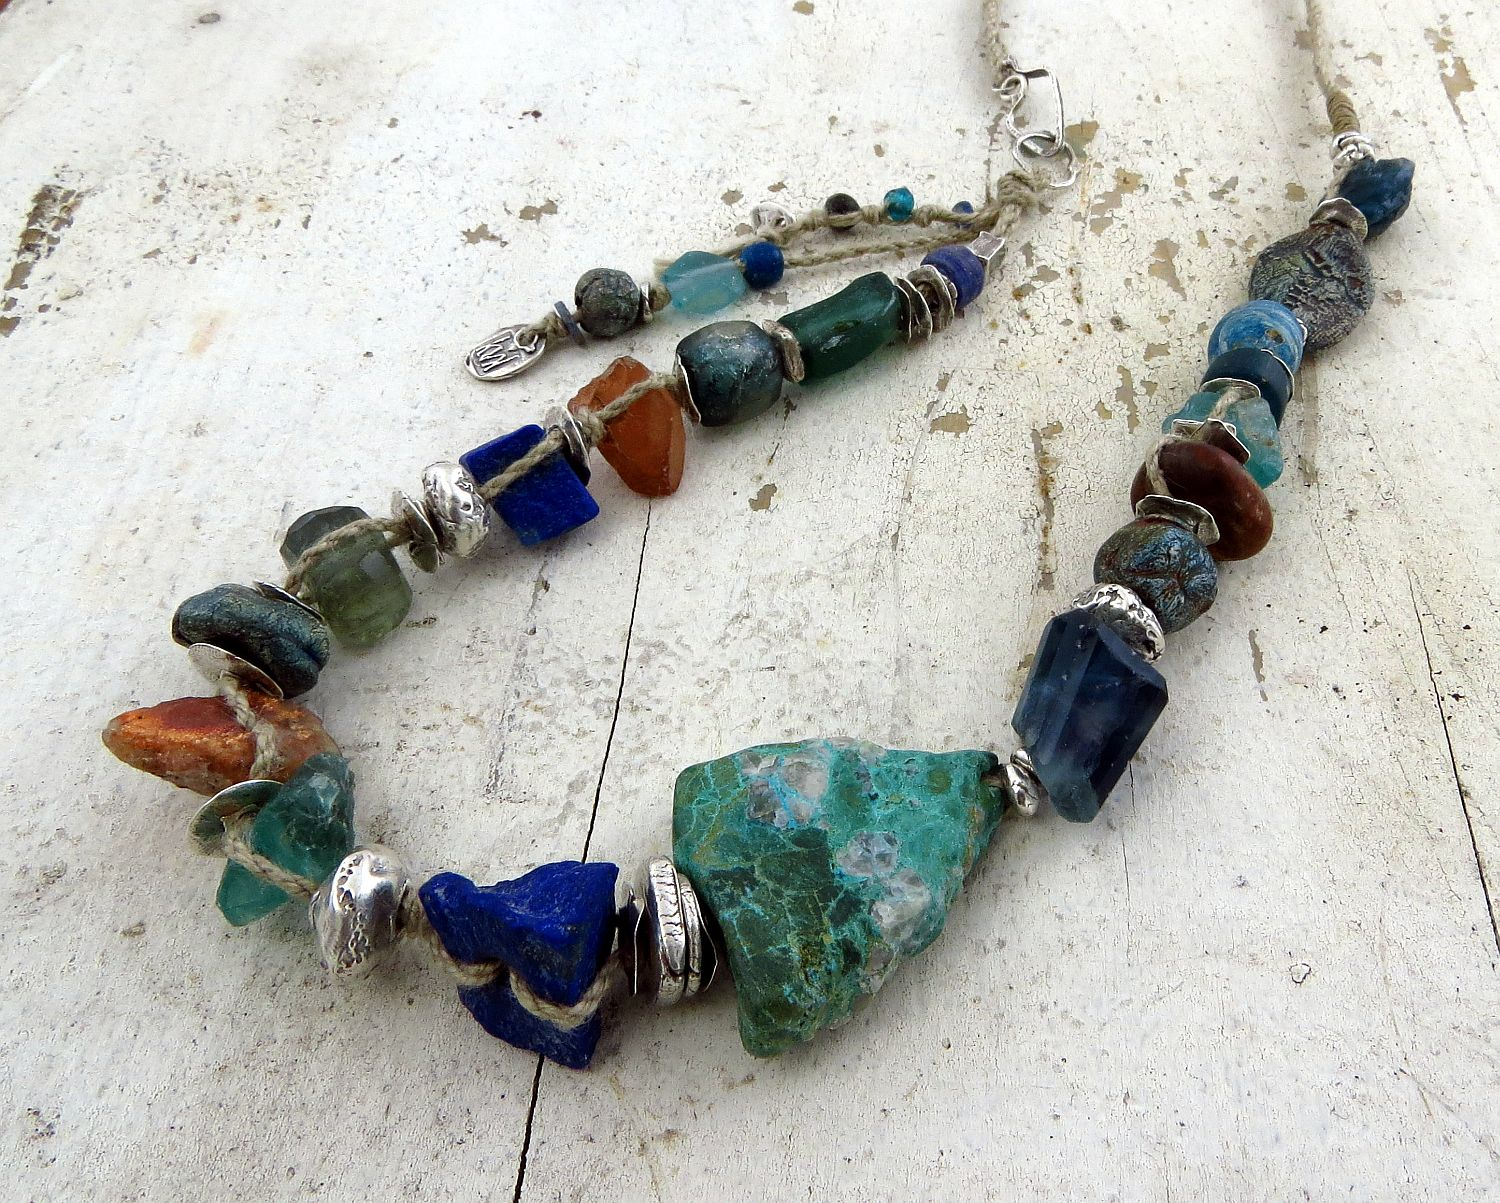 GAIA ... reminds me of a shaman's hoard ... rustic and lush!